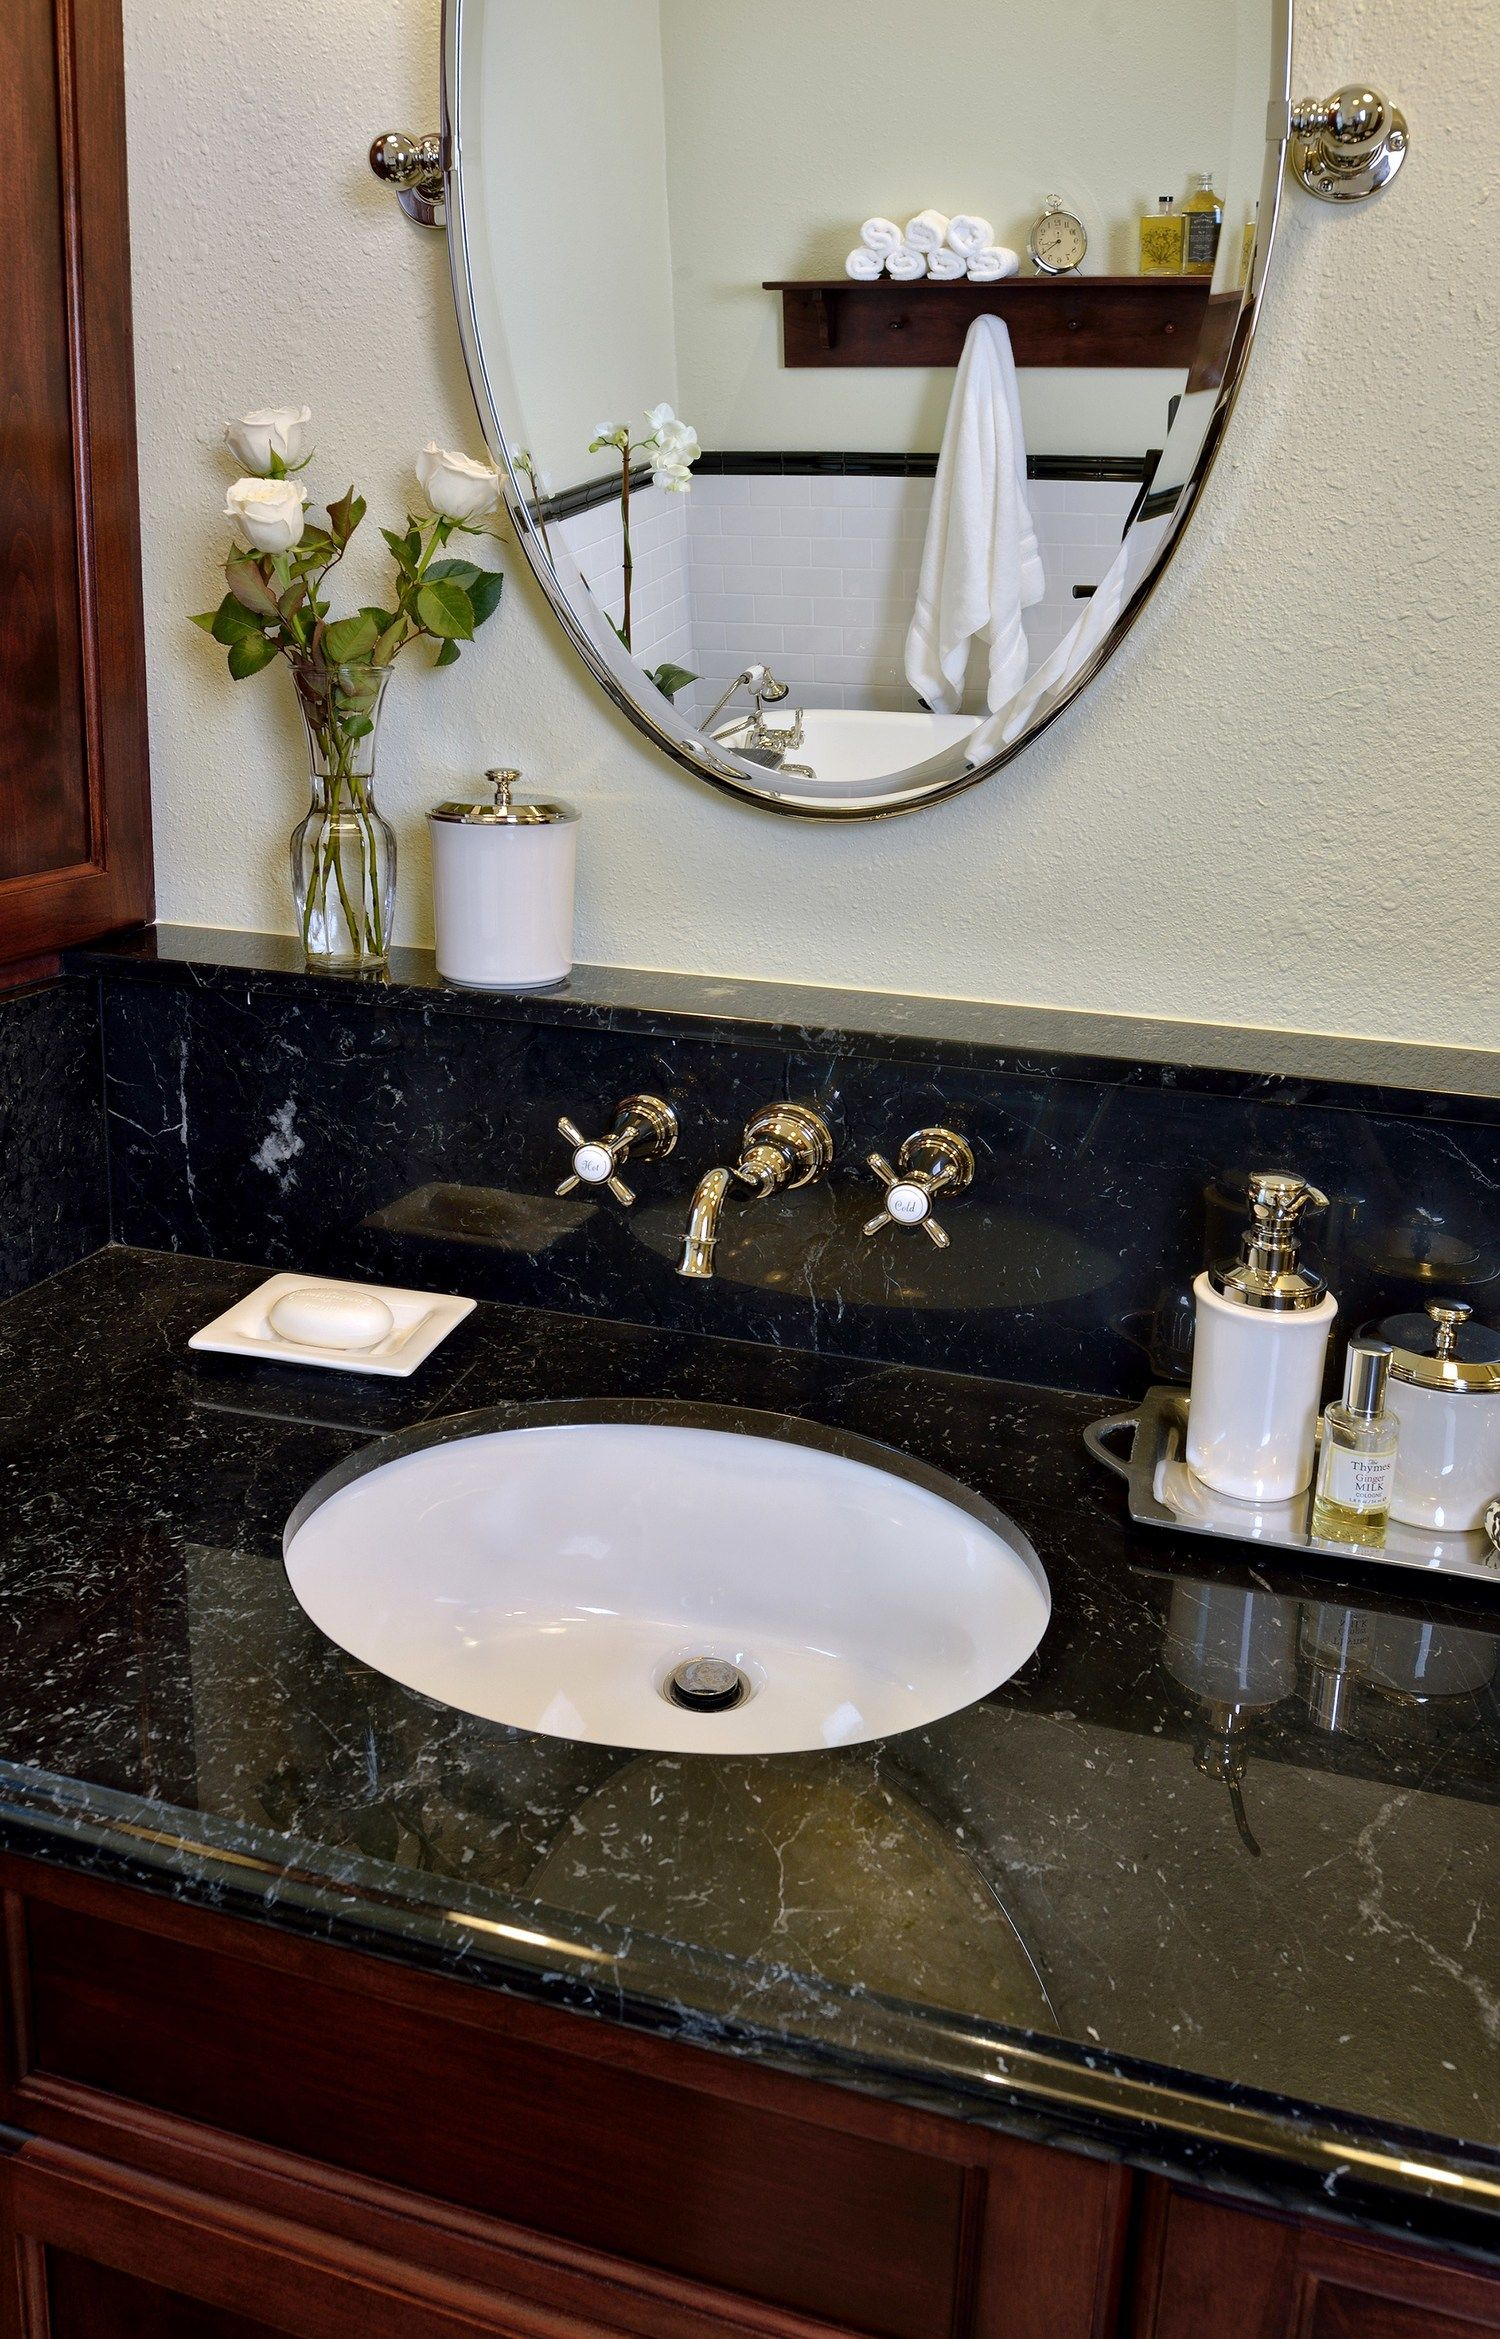 BEFORE & AFTER: This Vintage-Inspired Master Bathroom Is An Instant ...